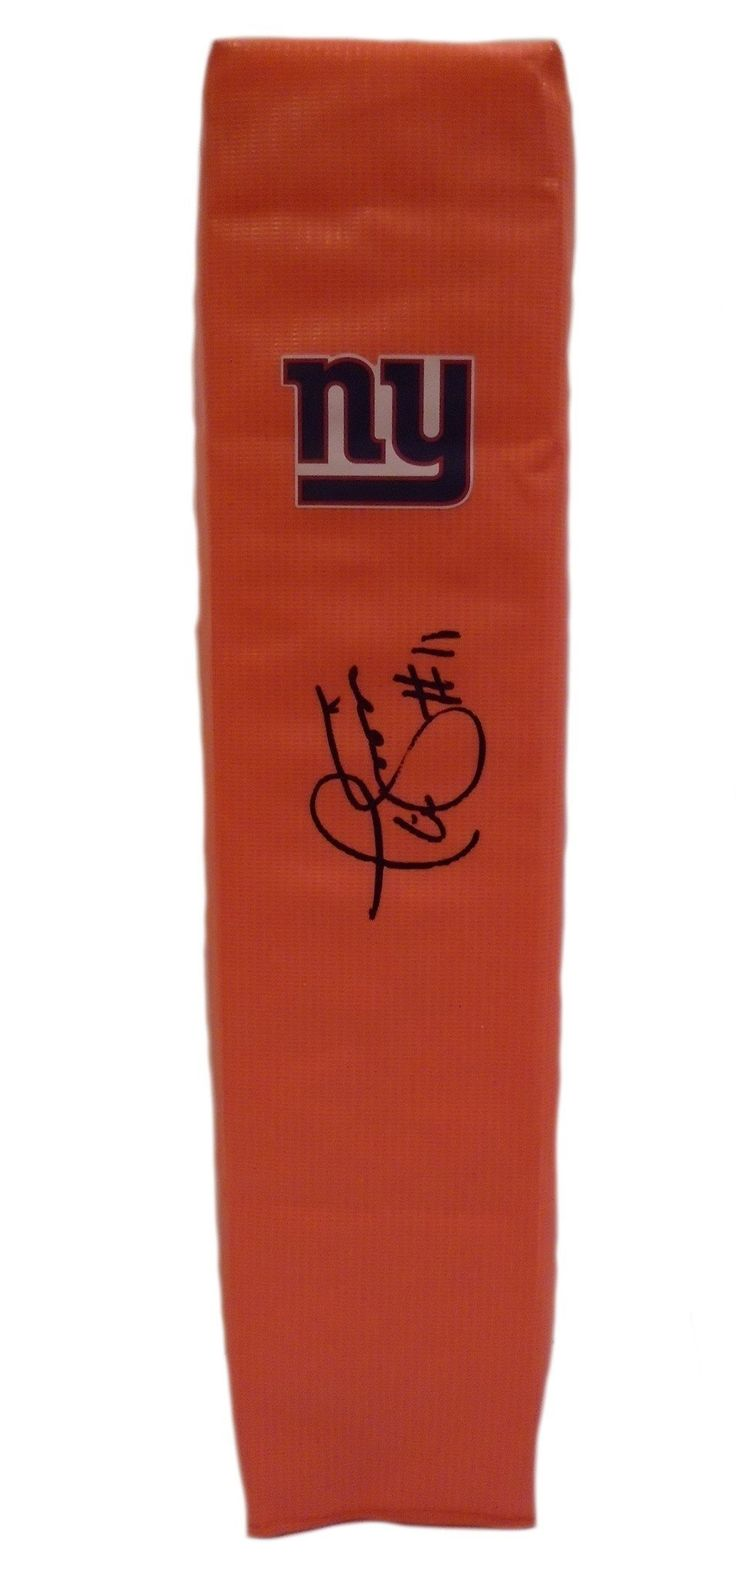 Phil Simms Autographed New York Giants Full Size Football End Zone Touchdown Pylon, Proof